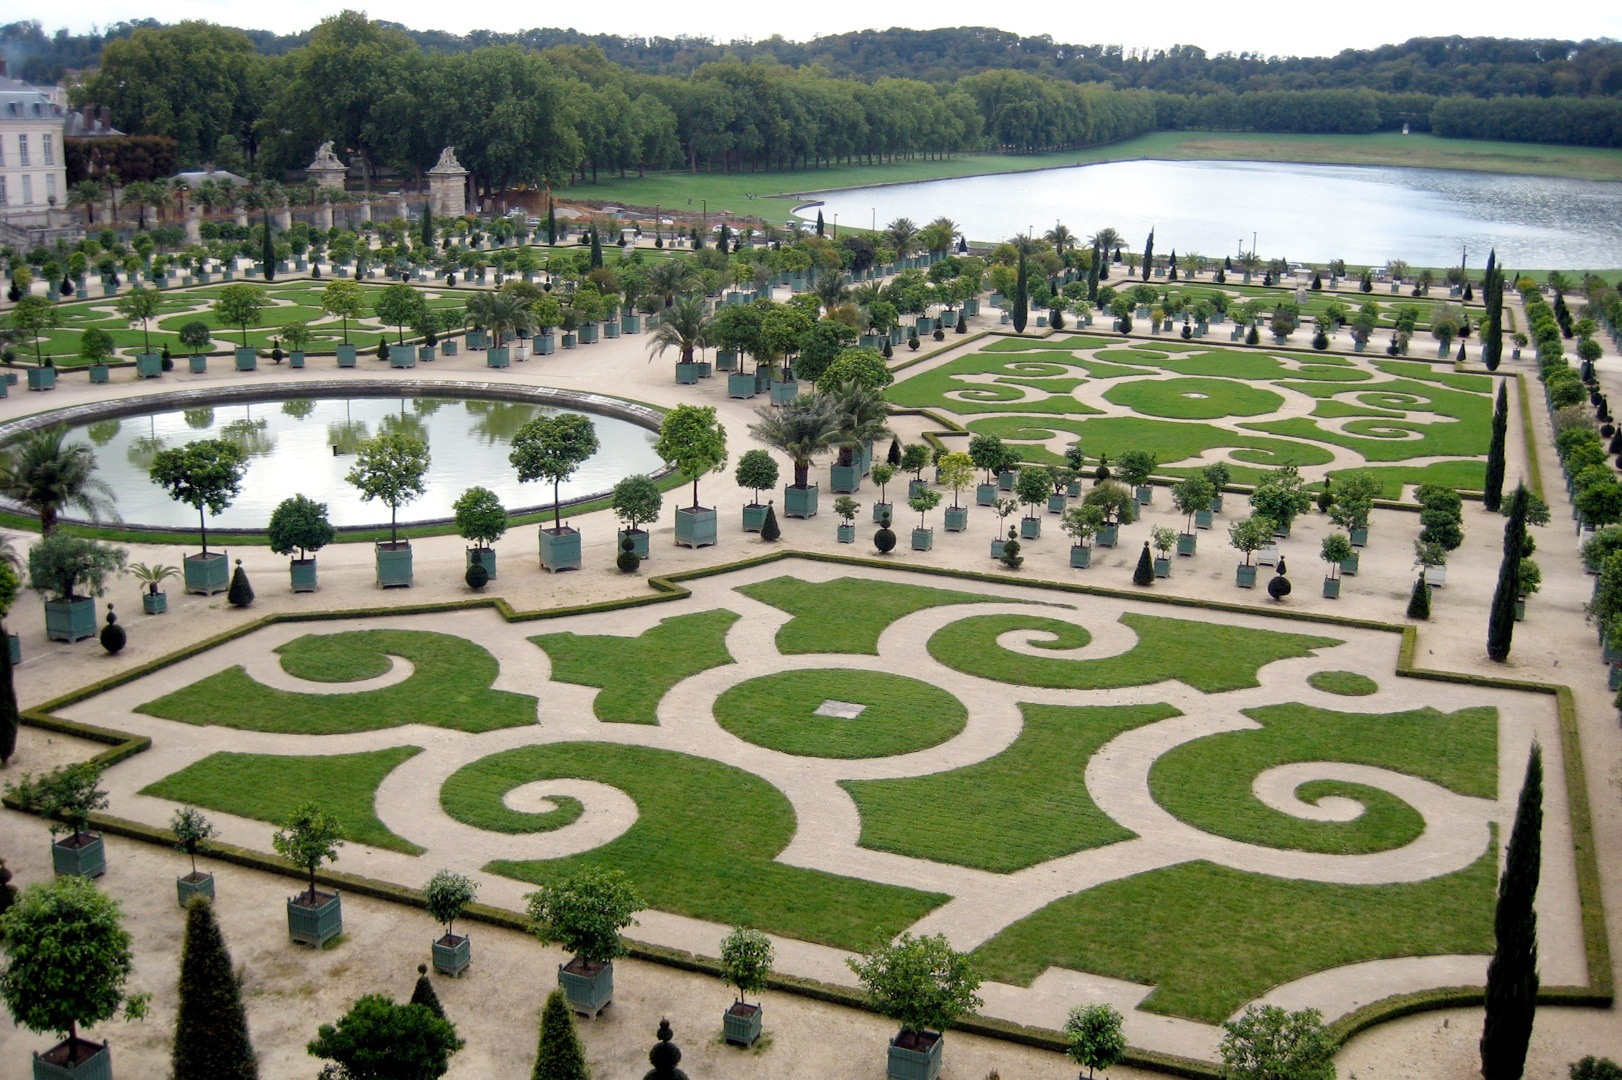 March 2013 travel the world - Le jardin du chateau de versailles ...